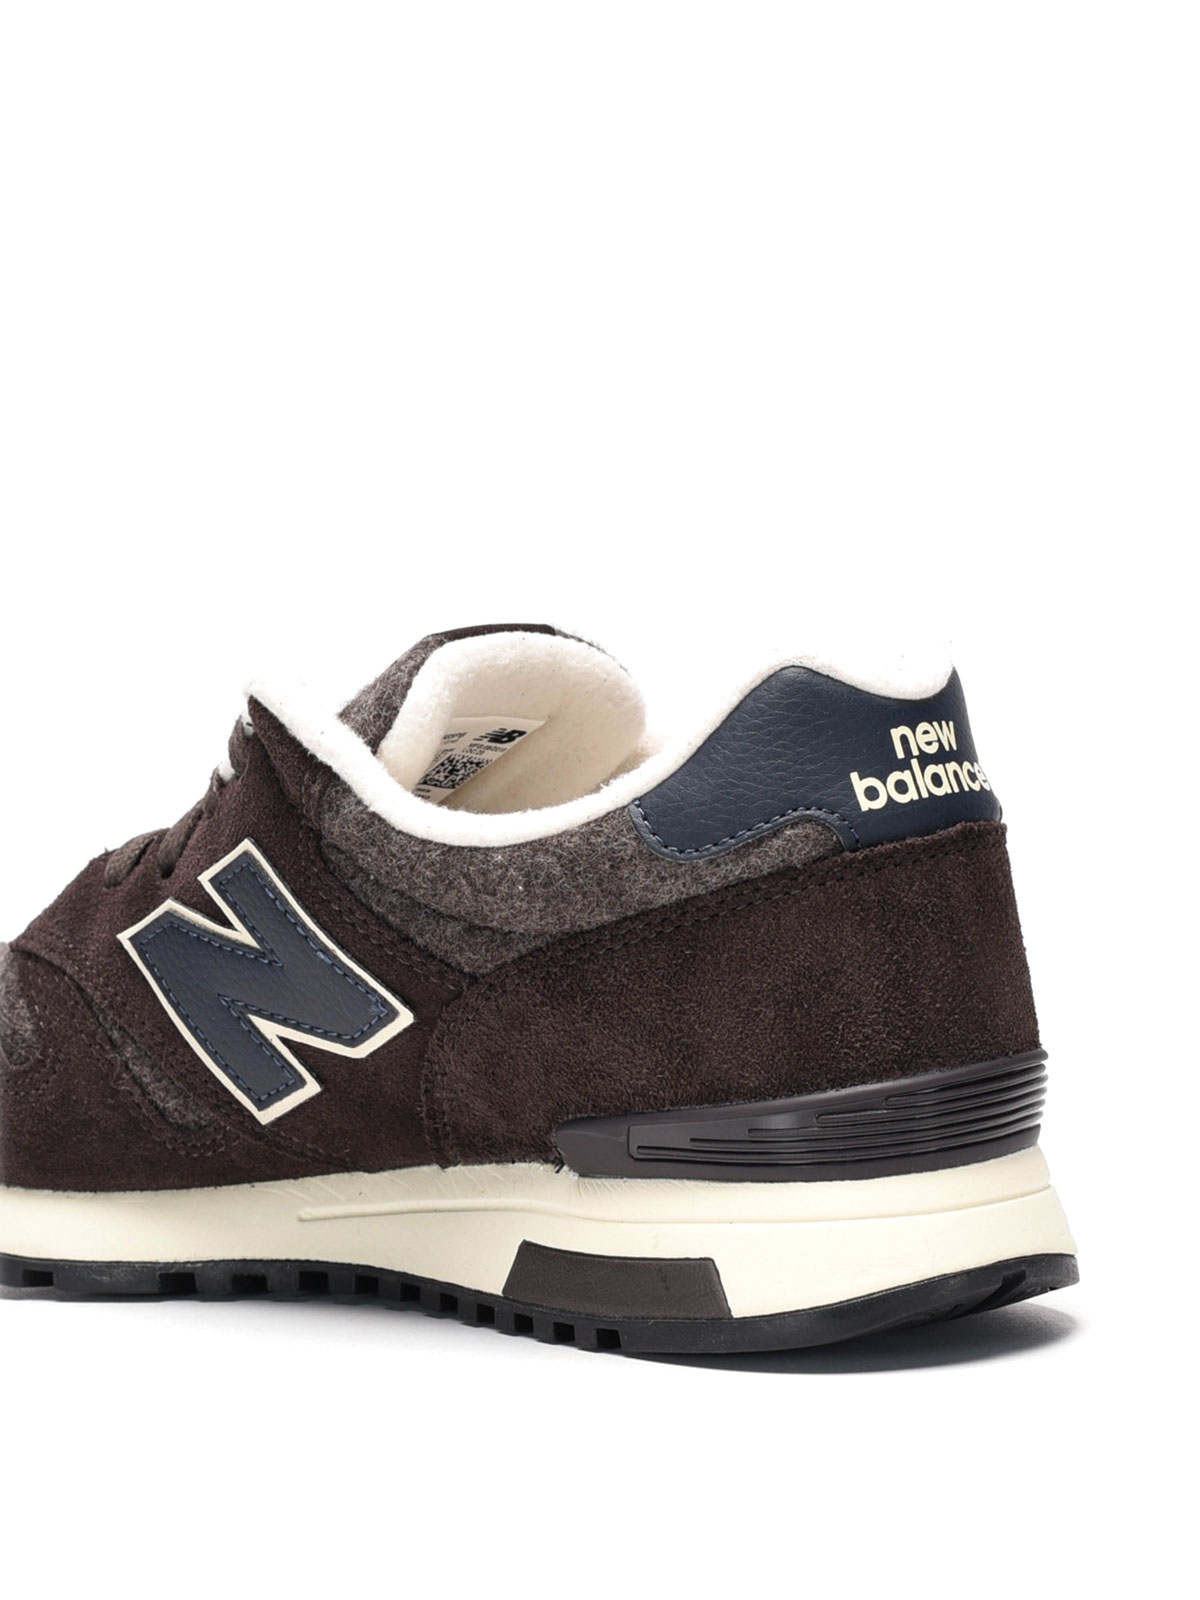 565 new balance homme